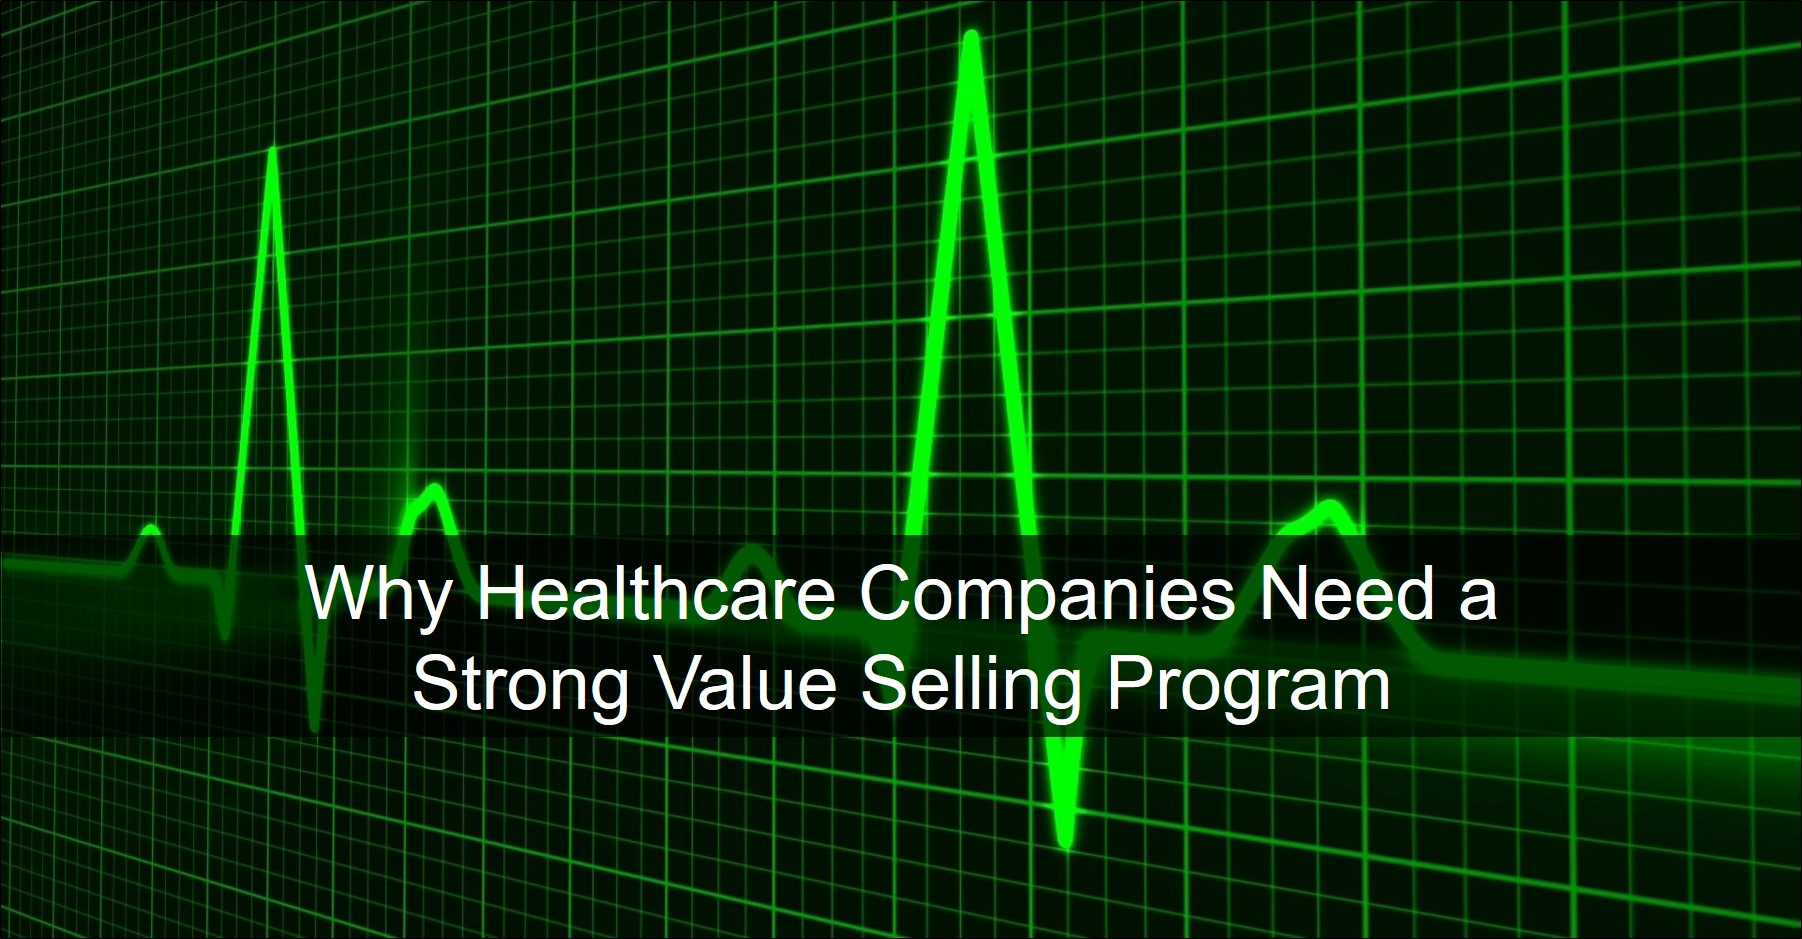 Healthcare companies need a strong value selling program